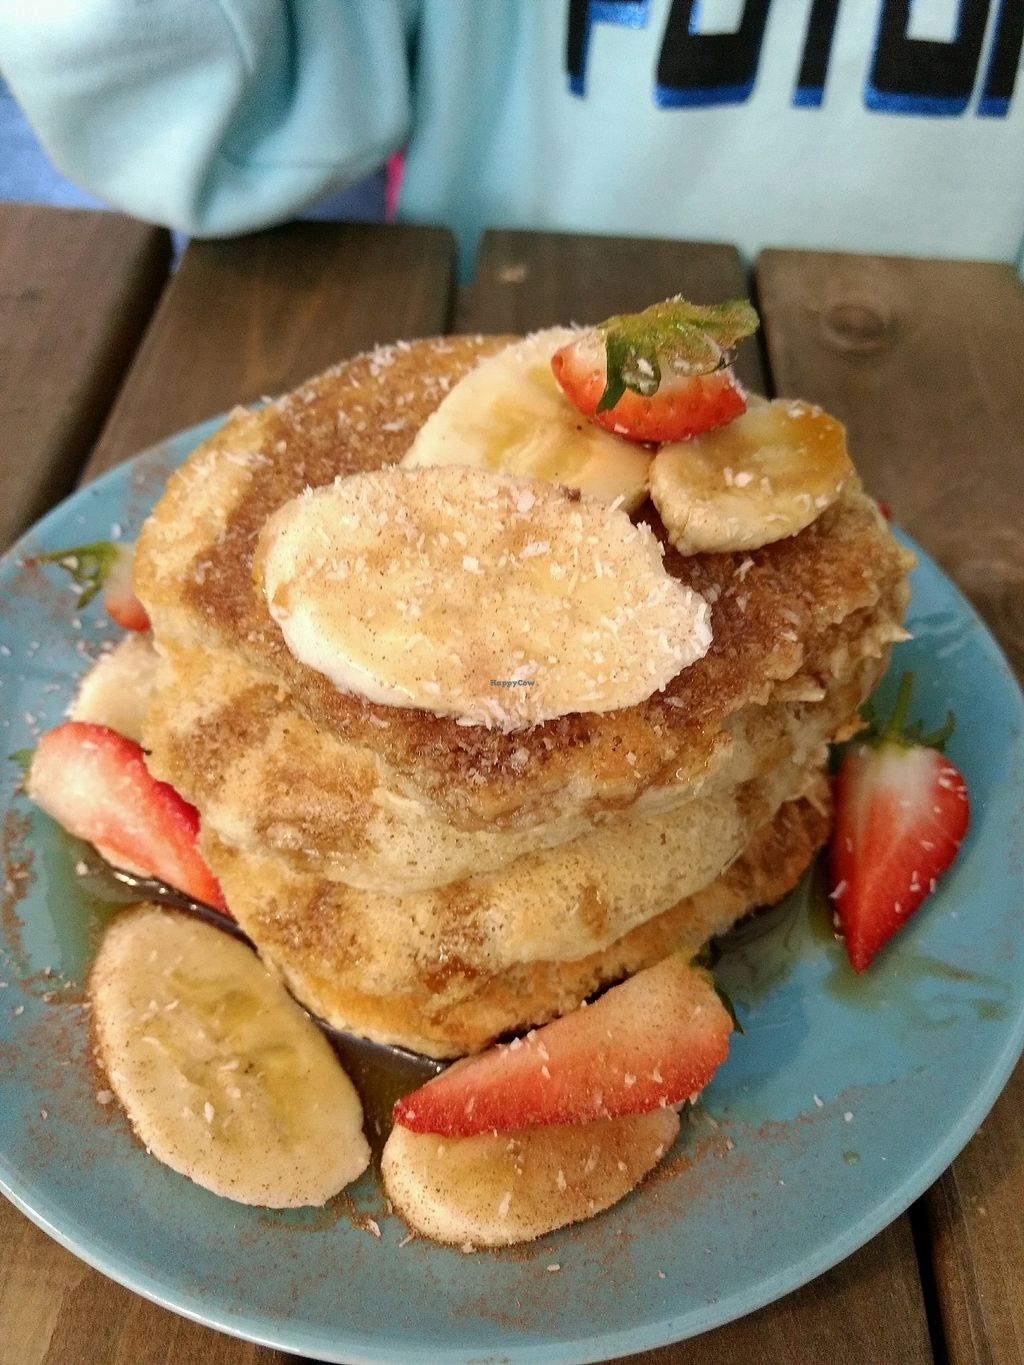 """Photo of Seeds for the Soul  by <a href=""""/members/profile/craigmc"""">craigmc</a> <br/>pancakes wiyh maple syrup <br/> April 15, 2018  - <a href='/contact/abuse/image/108790/386275'>Report</a>"""